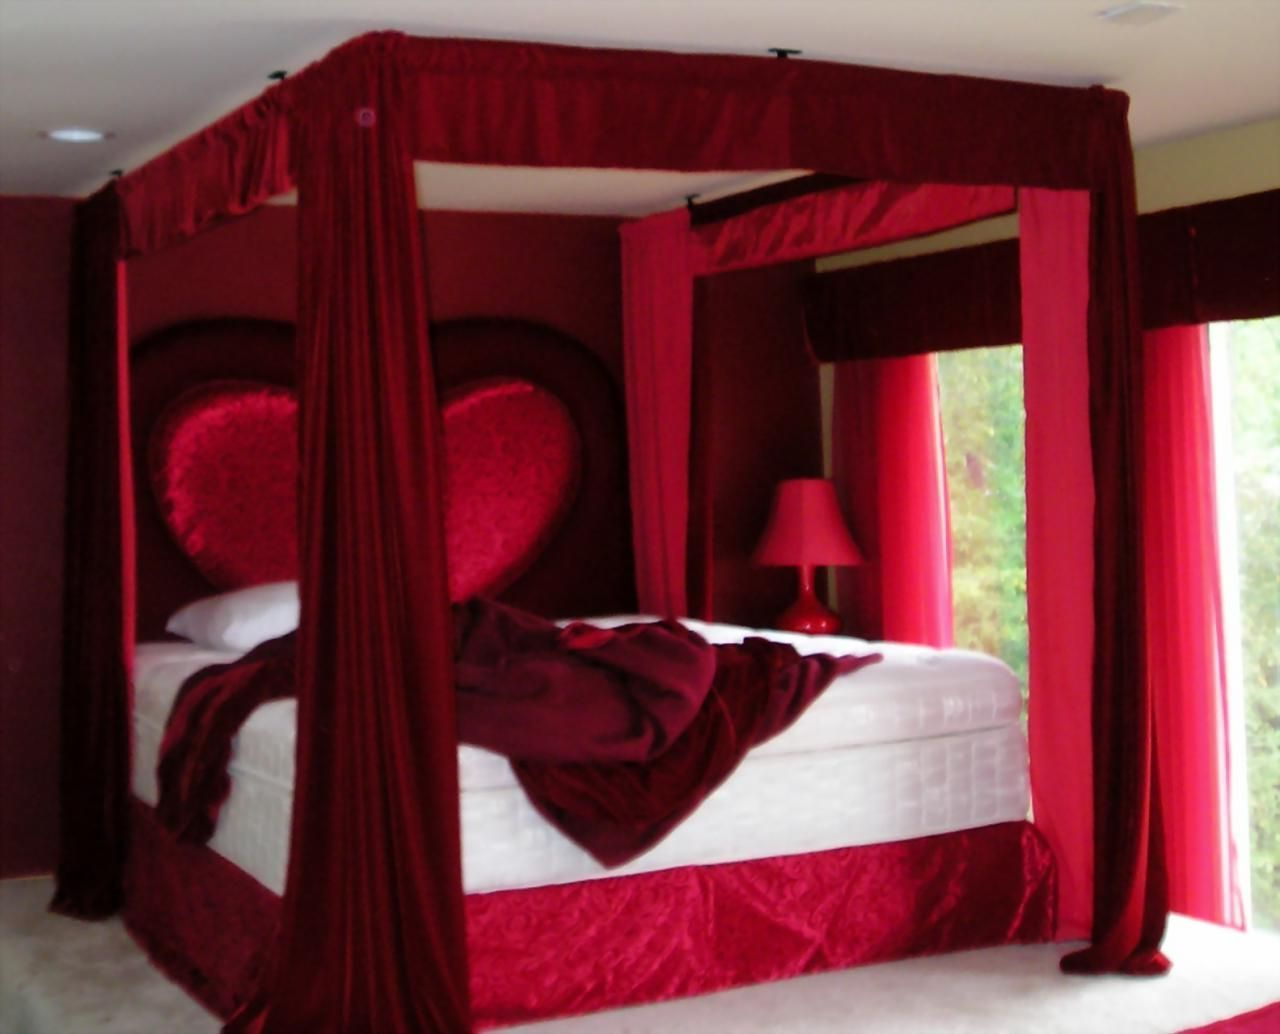 Delicieux Bedroom , Powerful Bedroom Design Ideas In Red Color Choices : Lovable Bedroom  Idea For Romantic